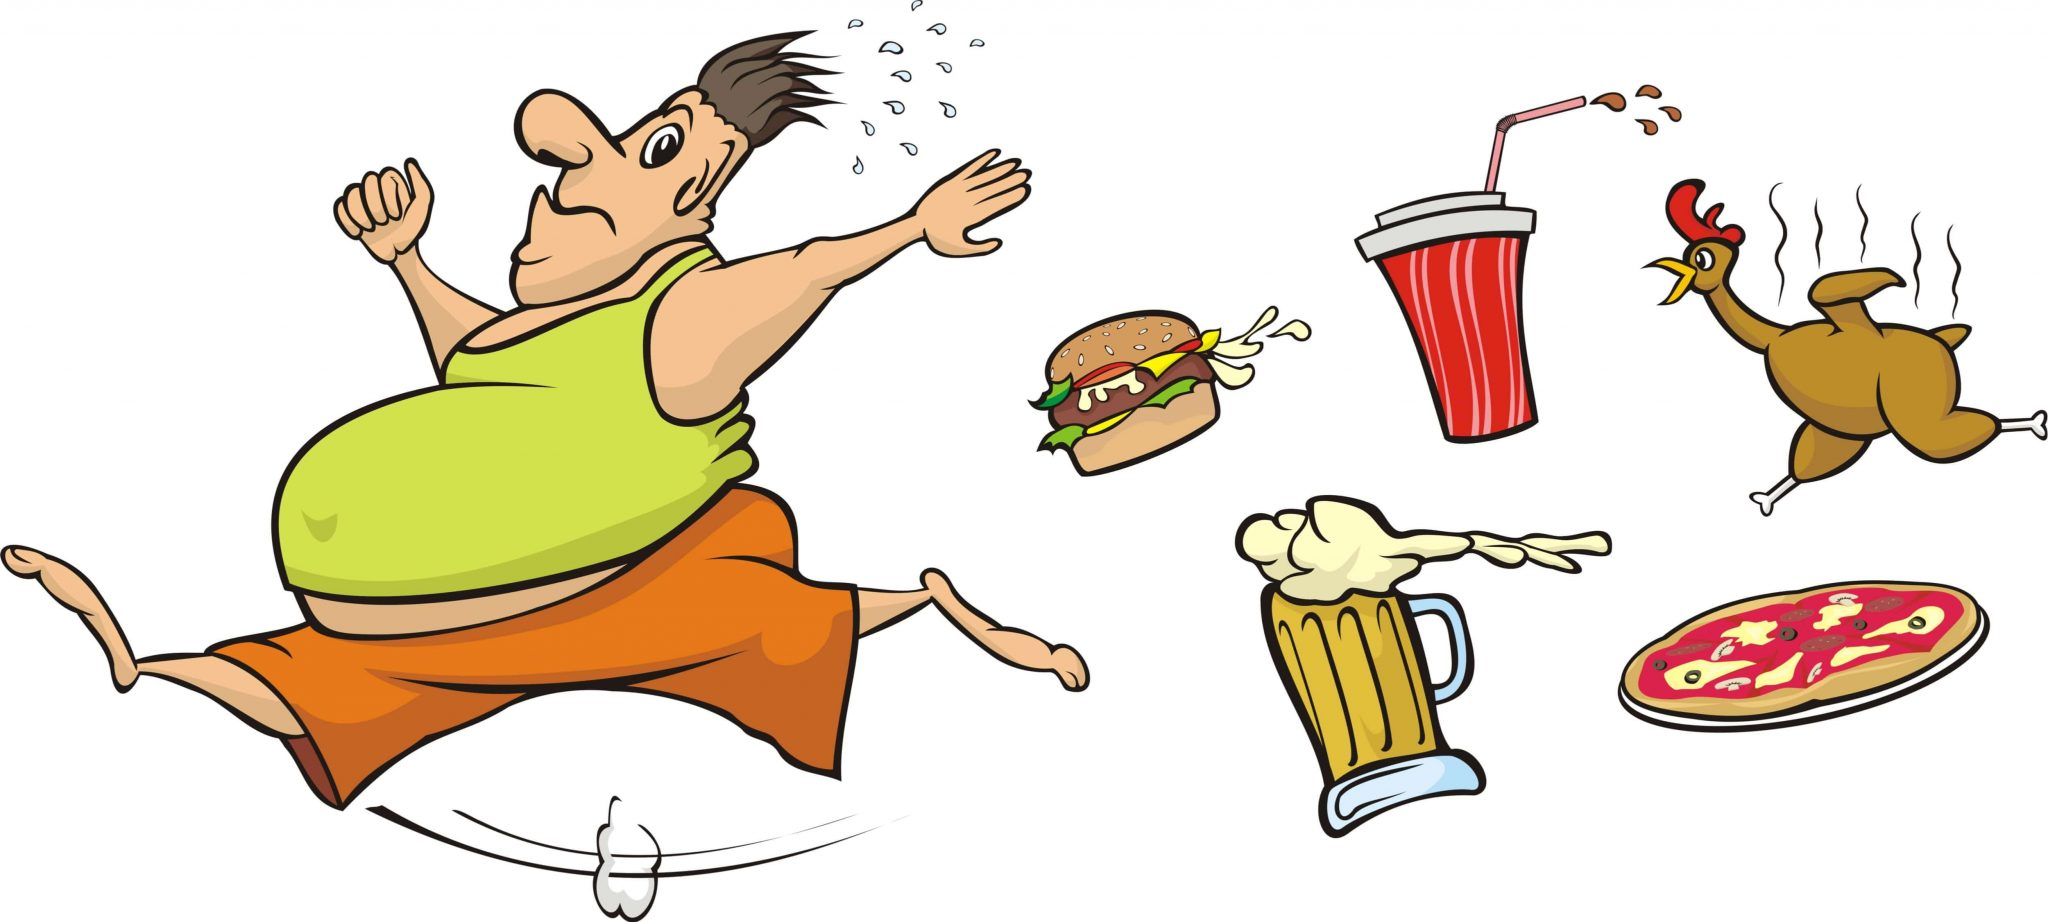 Image of a fat man chased by a pizza, a coke, a hamburger, a chicken, and a beer